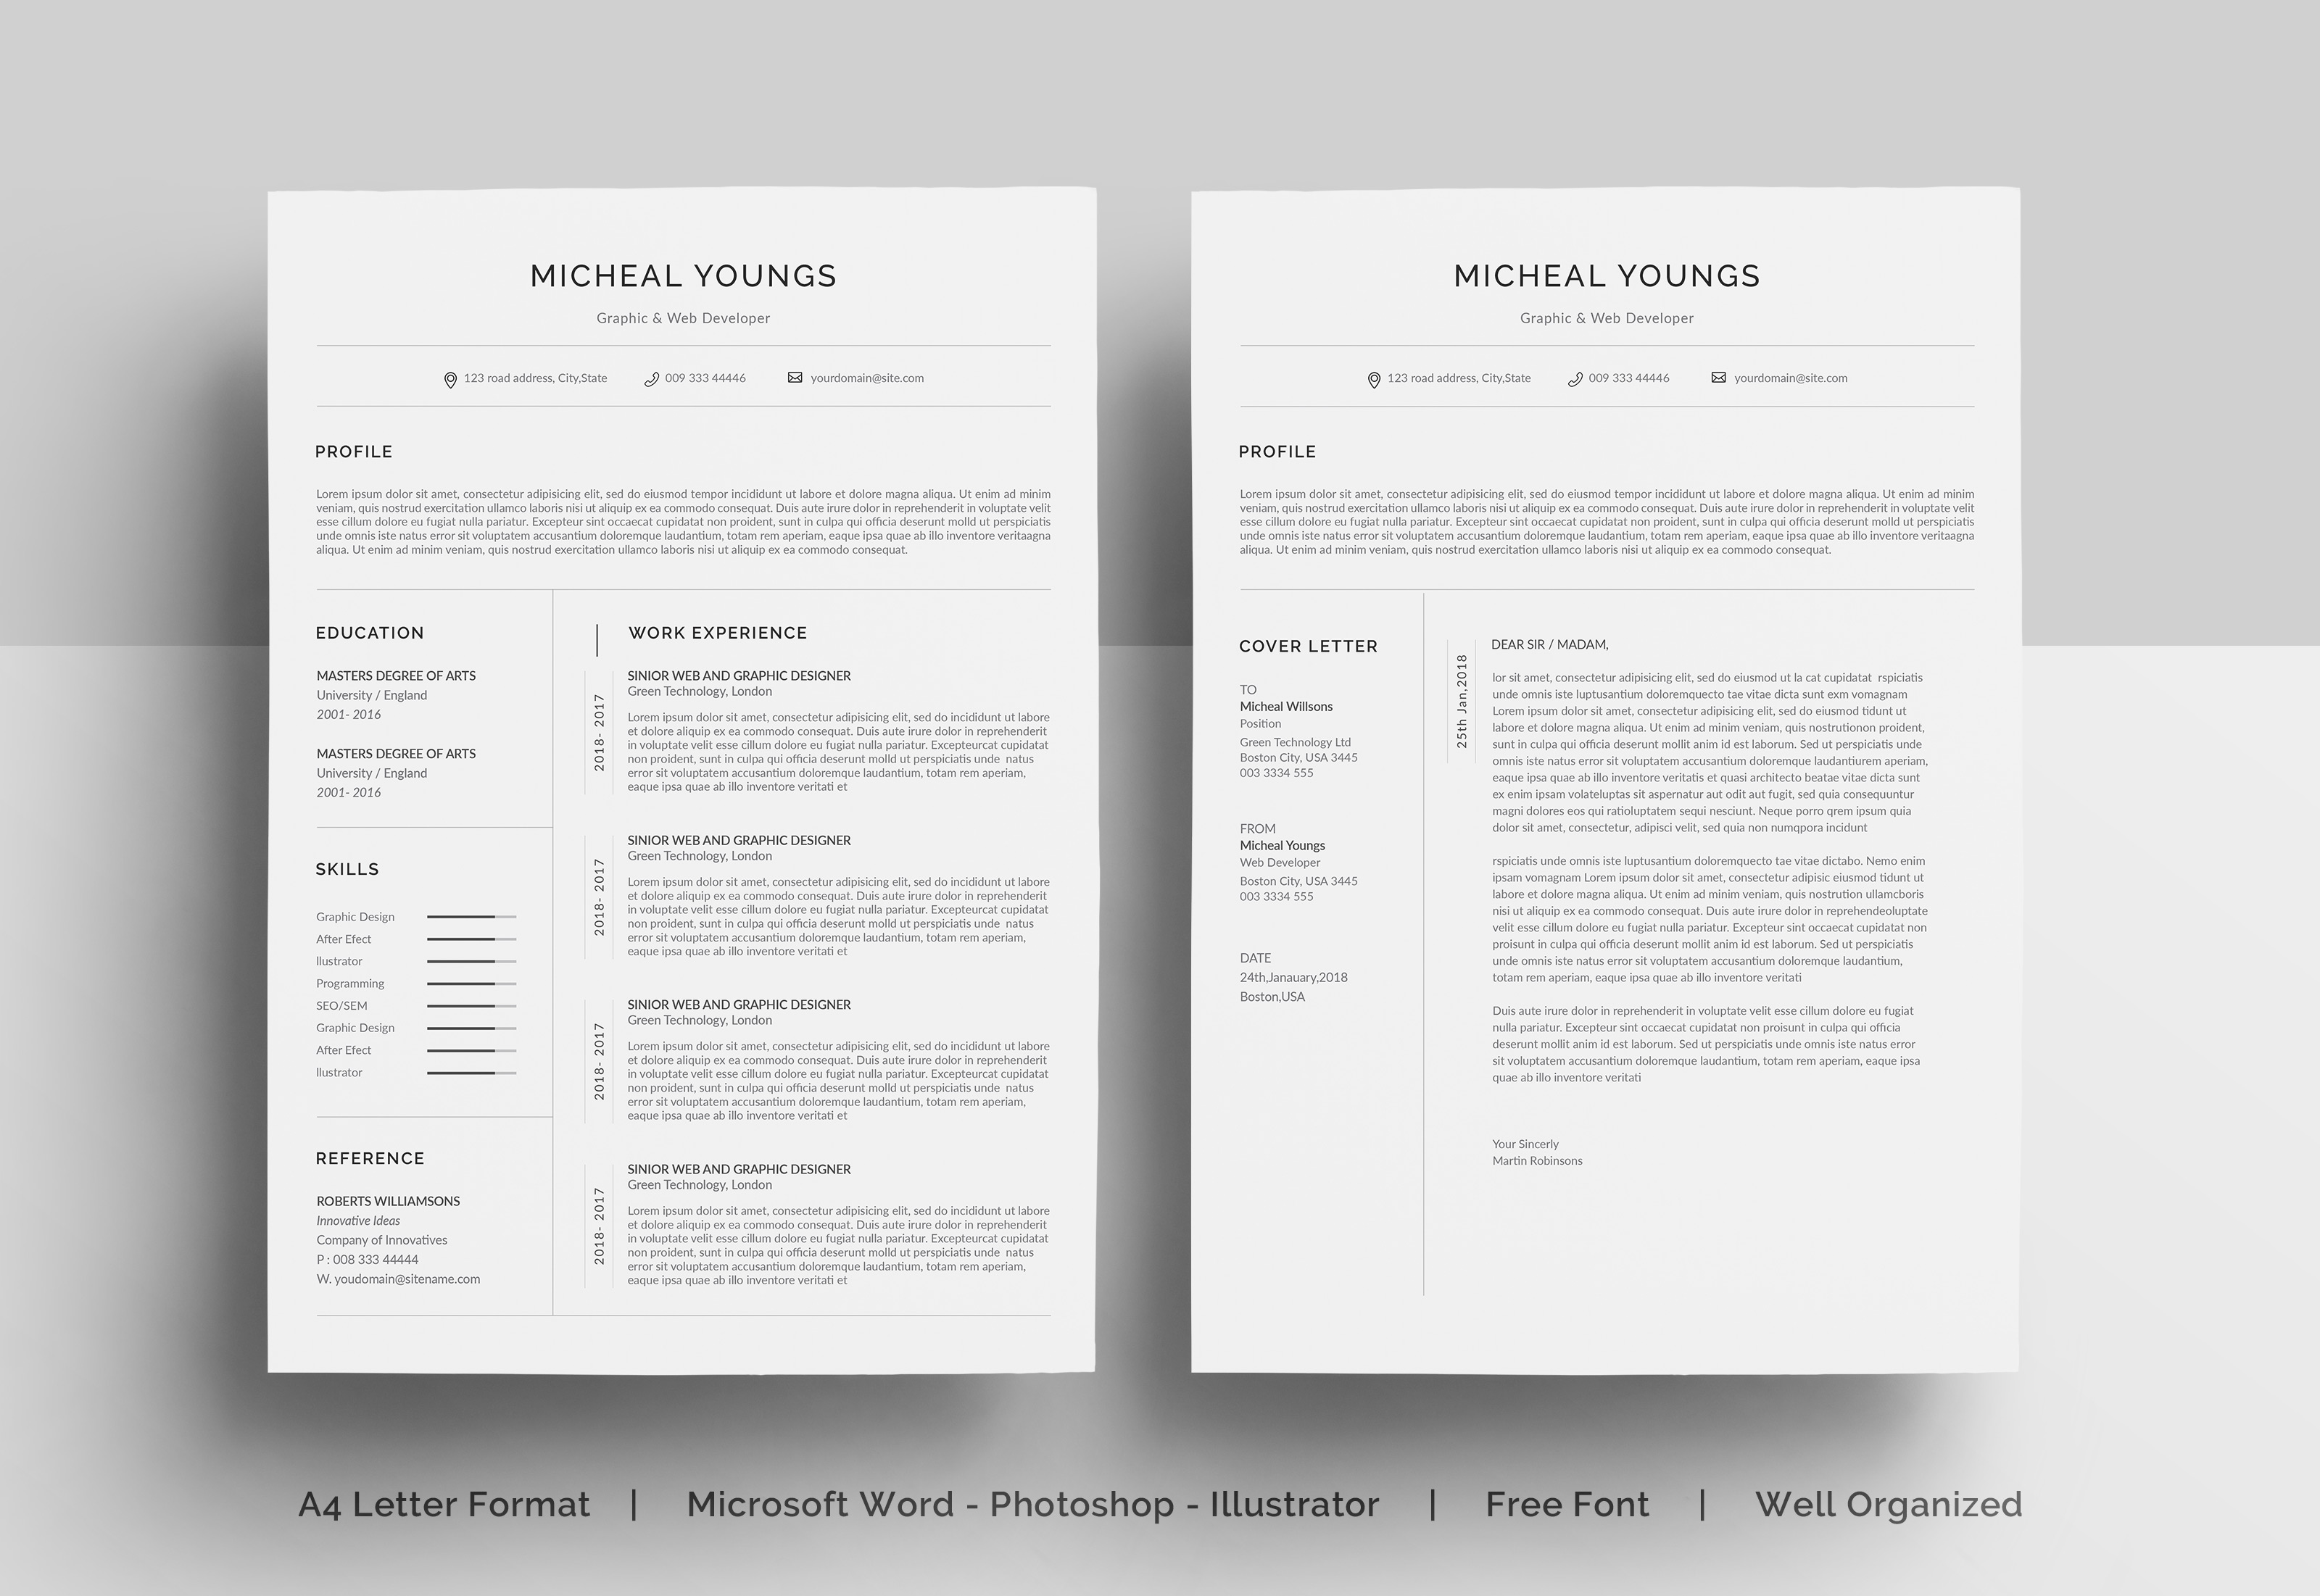 Download Free Resume Template In Word Graphic By Etiranipaul91 Creative Fabrica for Cricut Explore, Silhouette and other cutting machines.